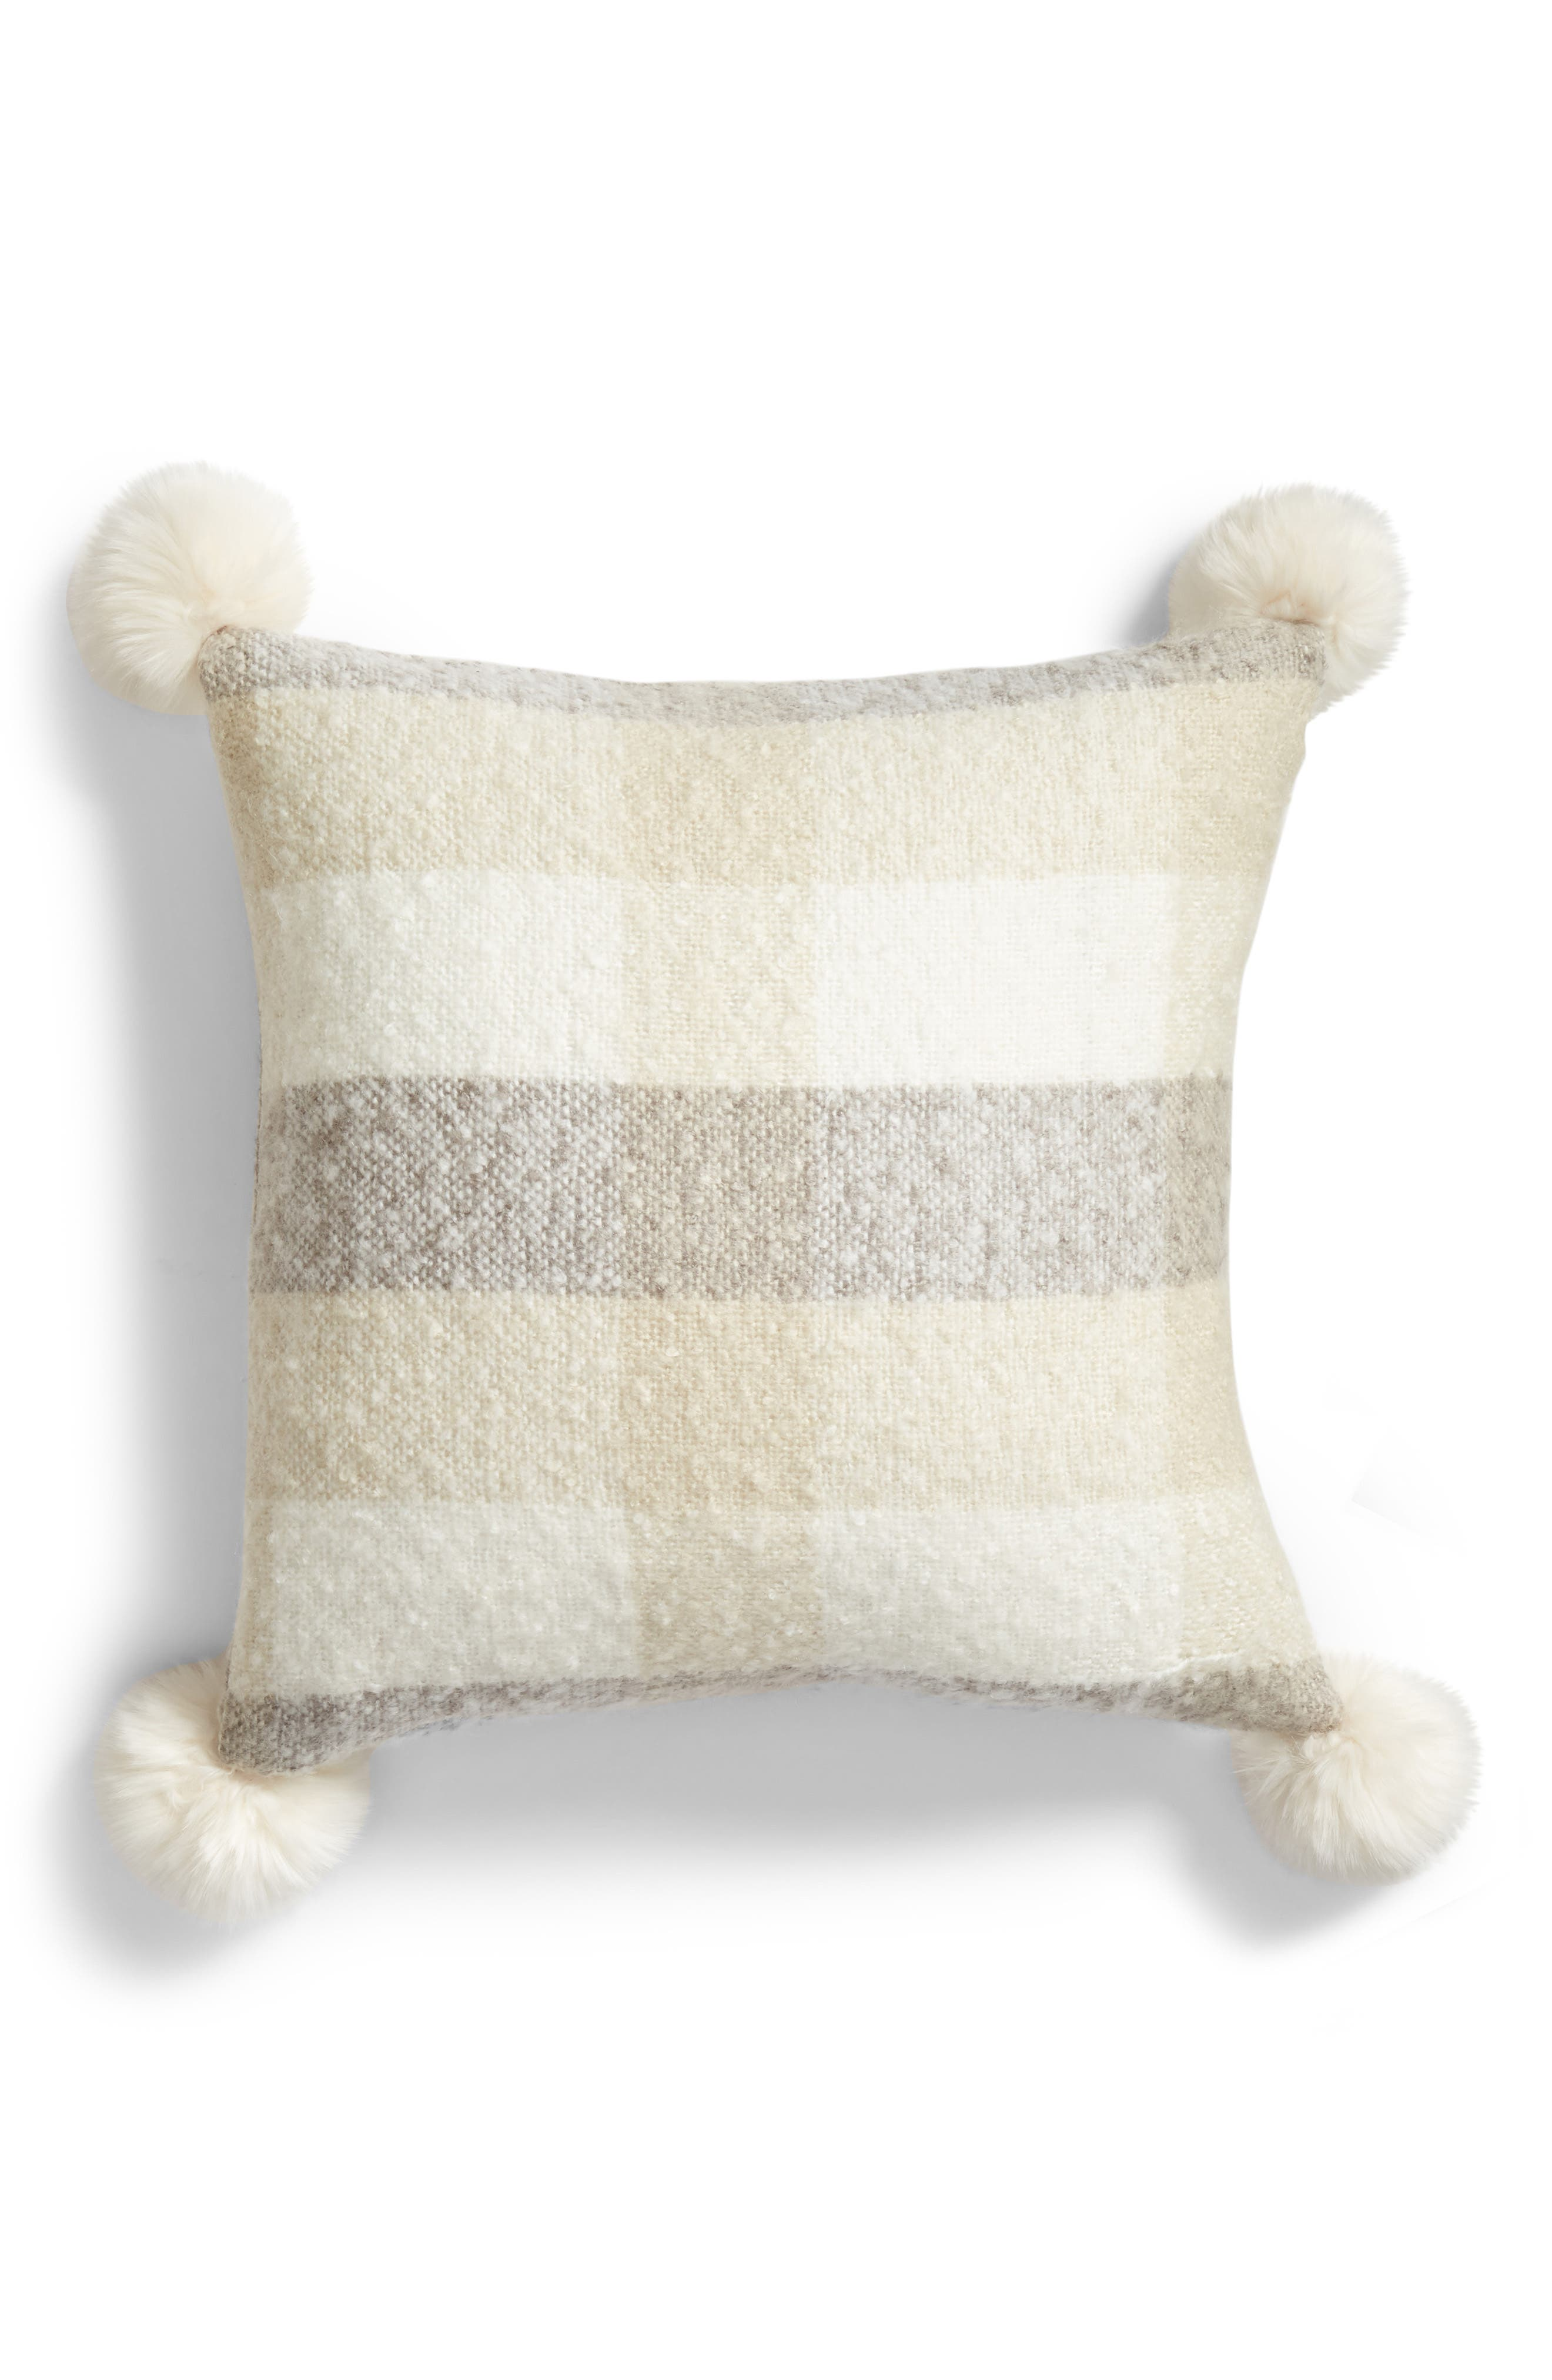 Brushed Faux Fur Pom Accent Pillow,                             Main thumbnail 1, color,                             BEIGE OATMEAL